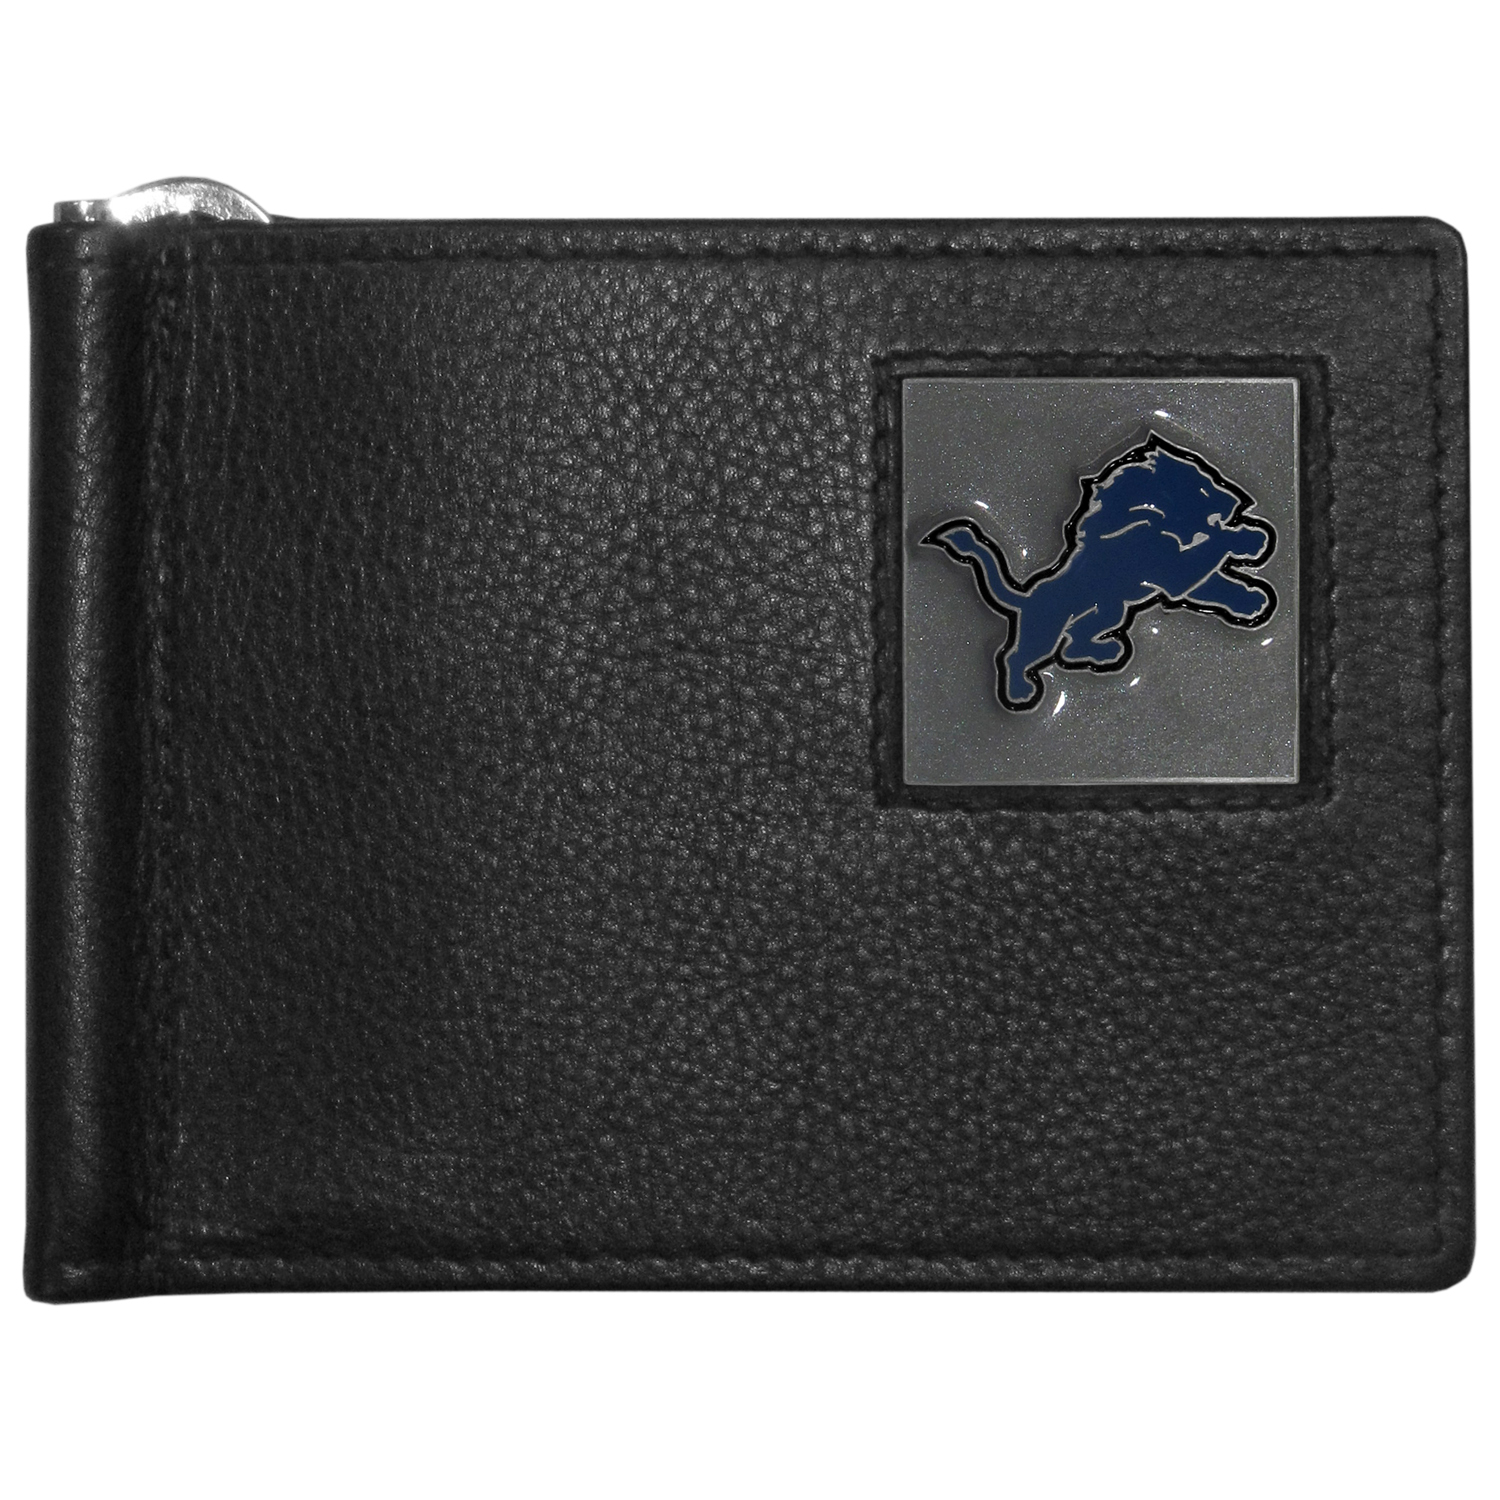 Detroit Lions Leather Bill Clip Wallet - This cool new style wallet features an inner, metal bill clip that lips up for easy access. The super slim wallet holds tons of stuff with ample pockets, credit card slots & windowed ID slot.  The wallet is made of genuine fine grain leather and it finished with a metal Detroit Lions emblem. The wallet is shipped in gift box packaging.